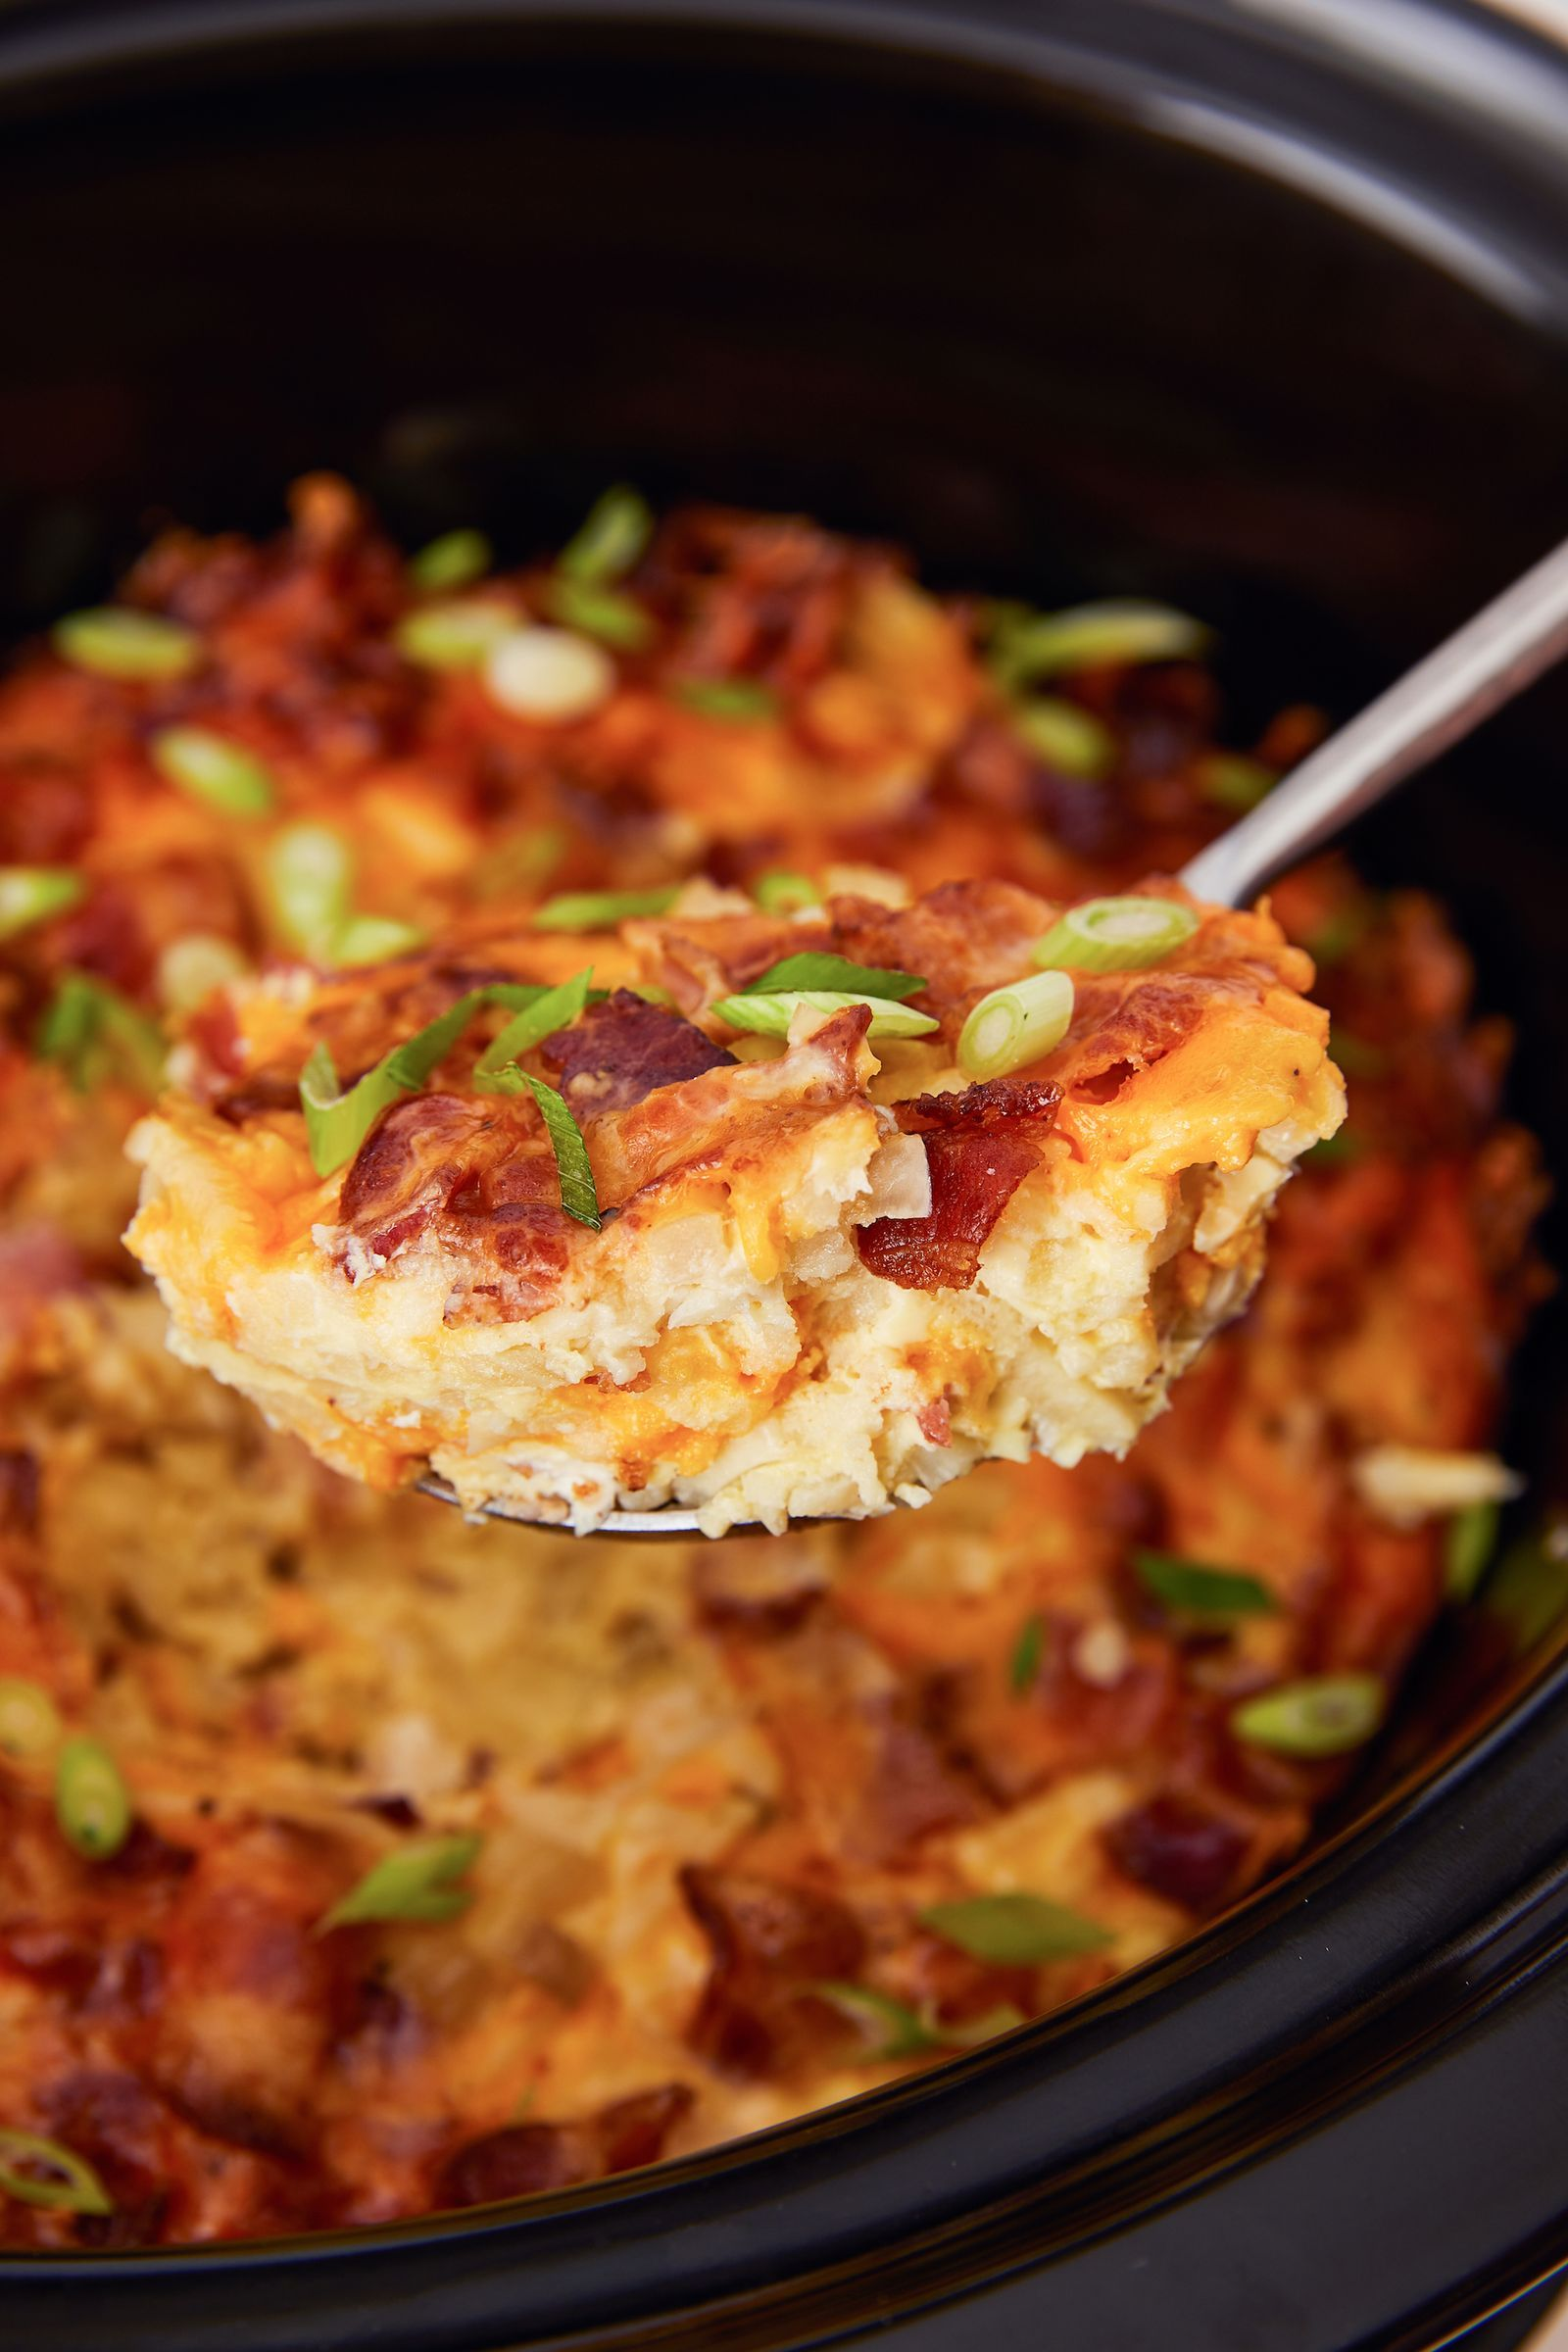 Crock Pot Breakfast Casserole Recipe Crockpot Recipes Slow Cooker Recipes Crockpot